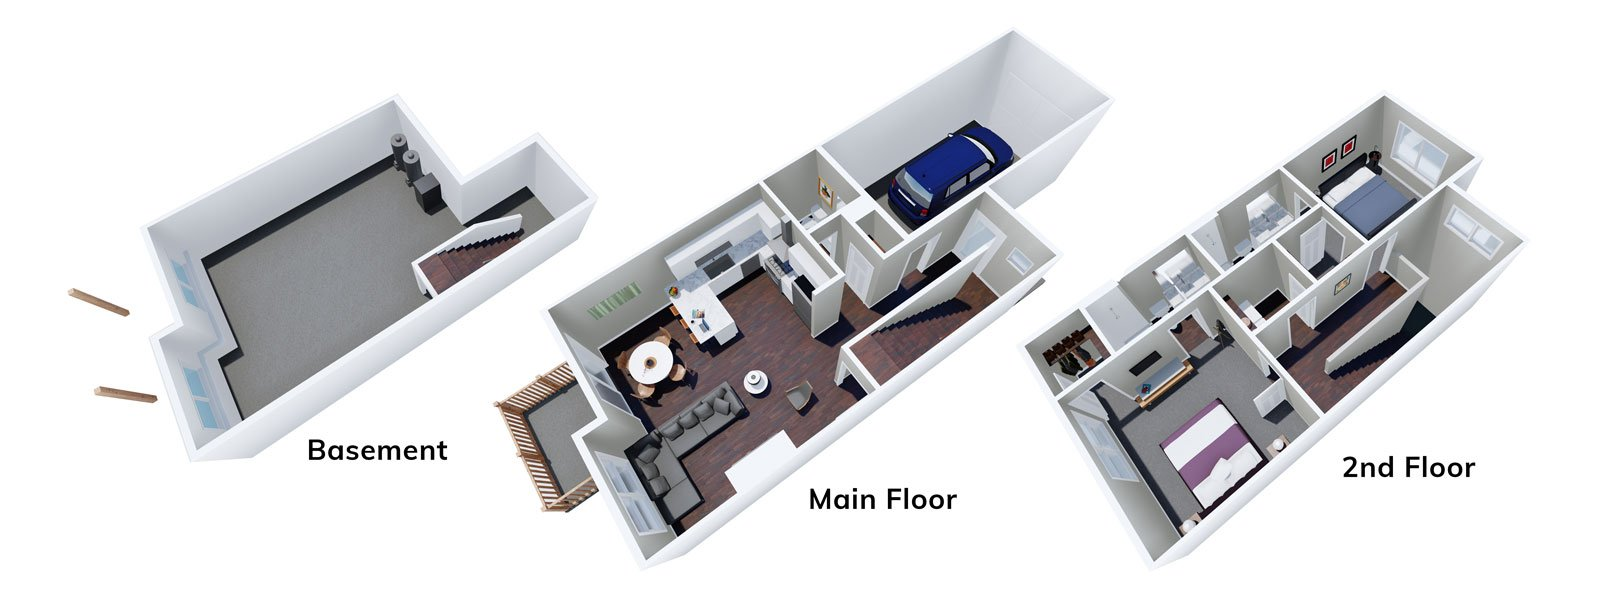 2 Bedroom Homes at The Hanover Townhomes of Caledonia